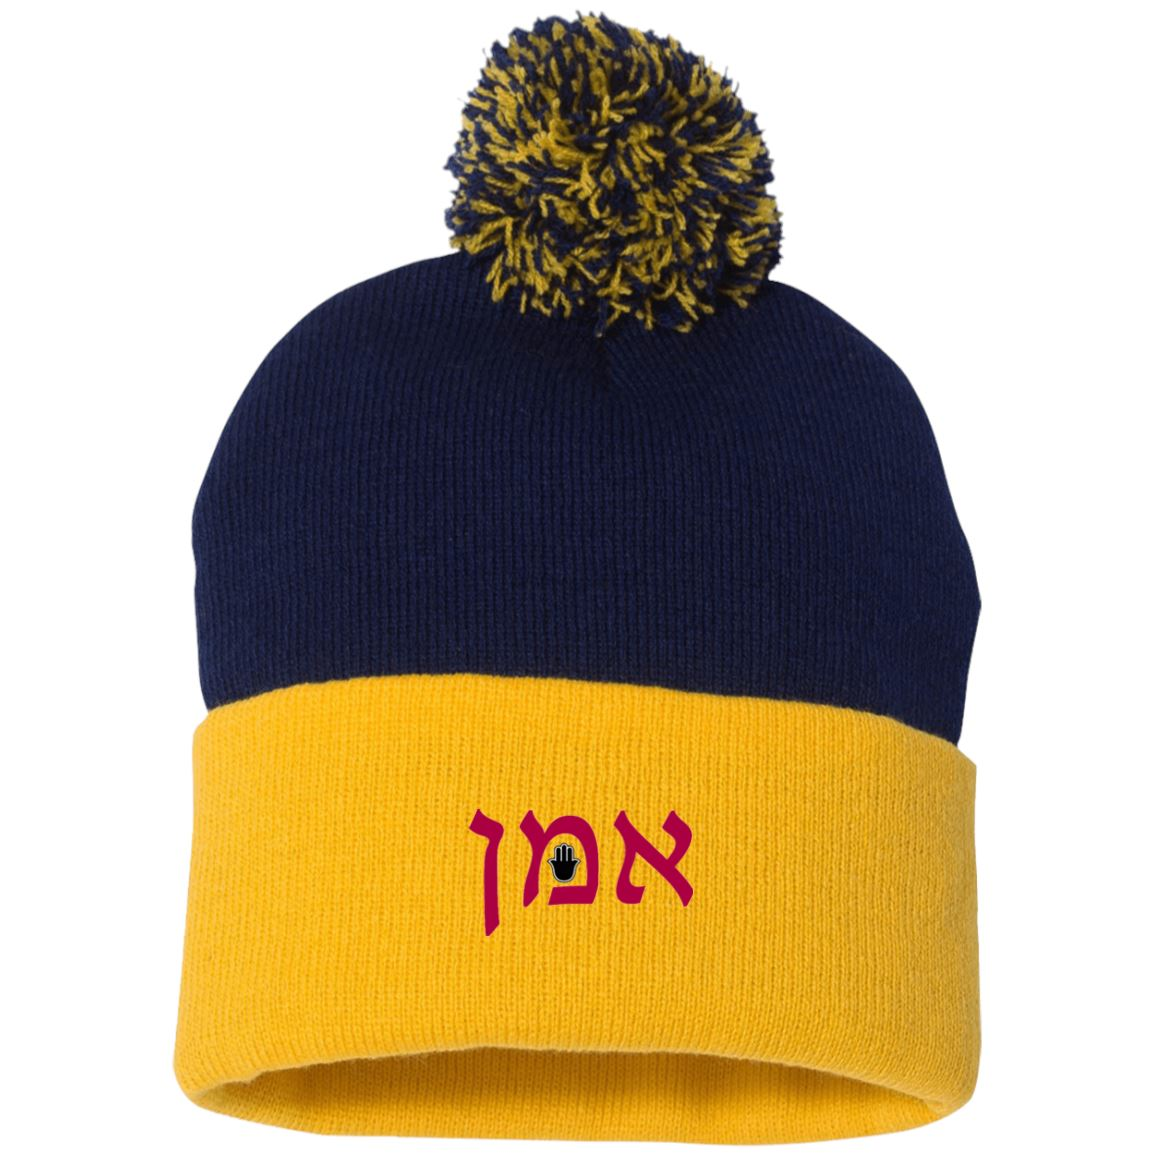 Embroidered Hebrew Pom Pom Knit Cap Hat Hats Black/Red One Size